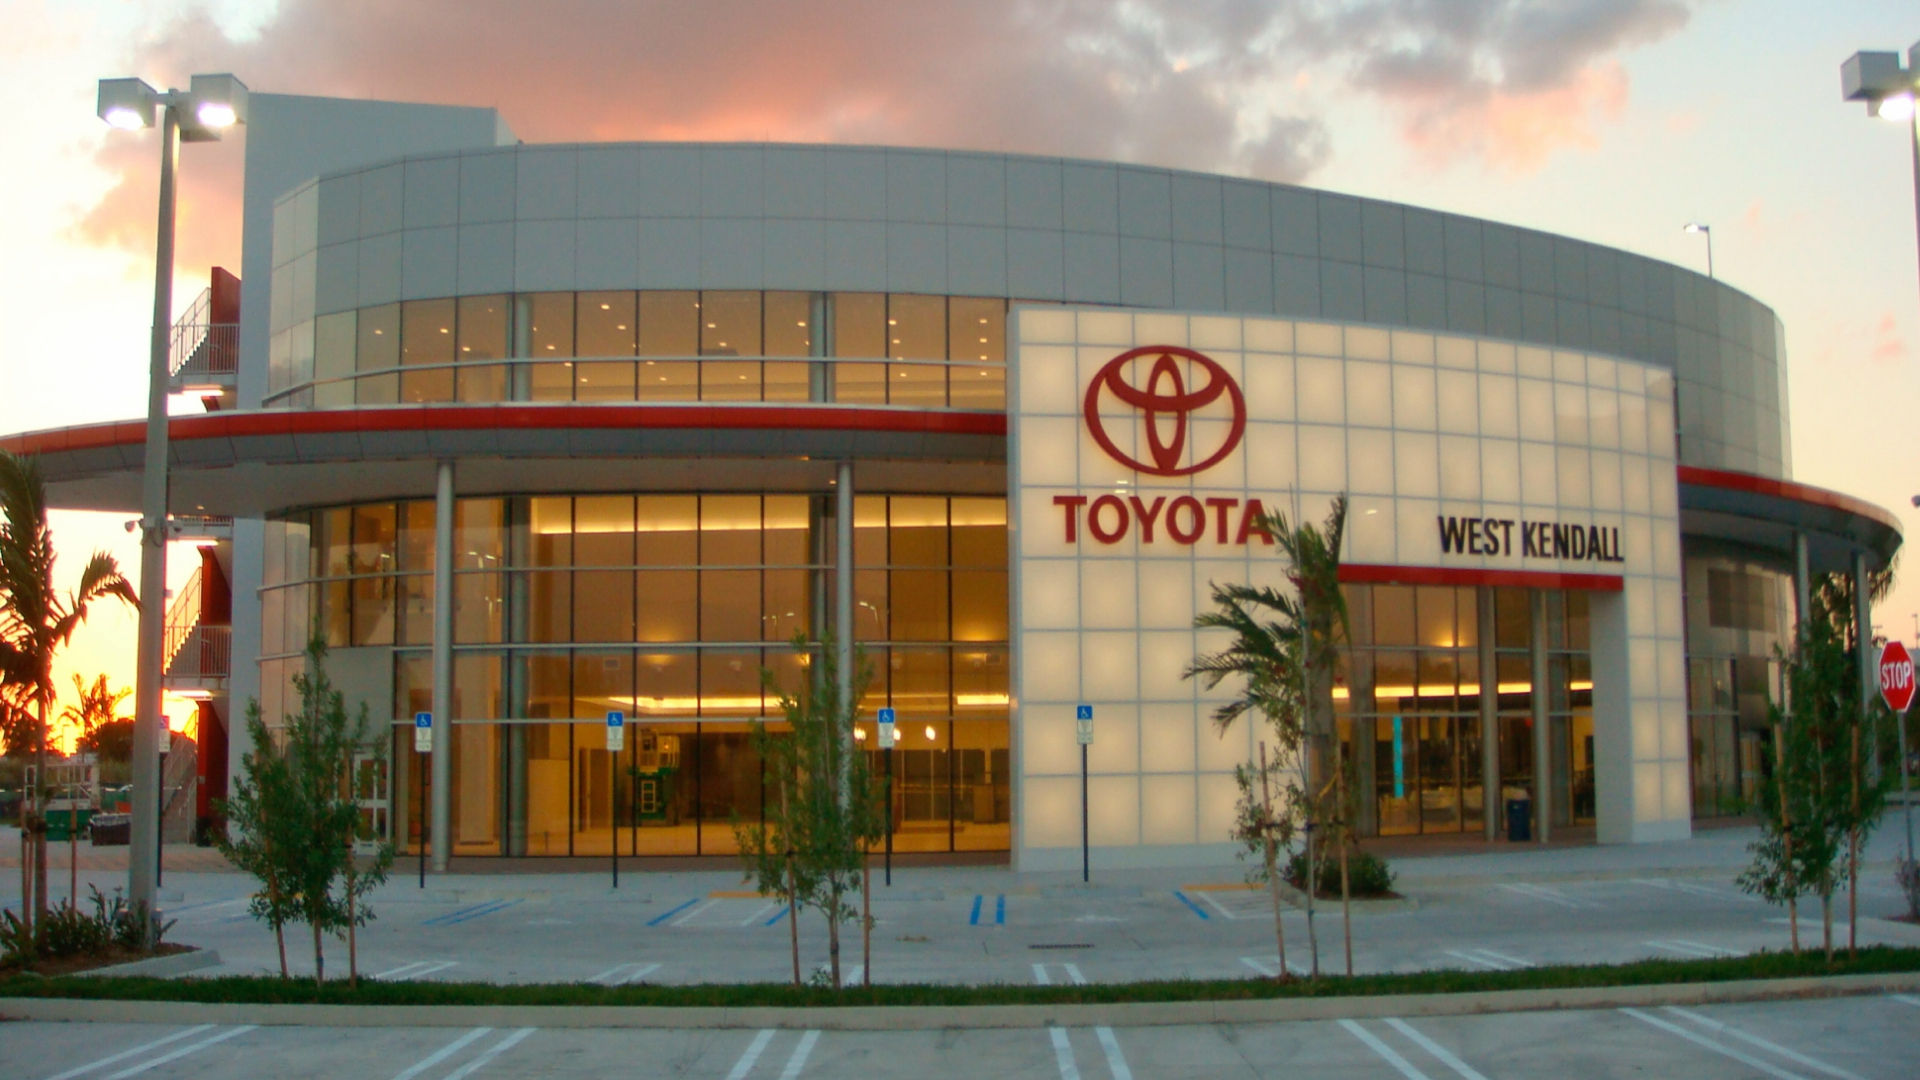 west kendall toyota school